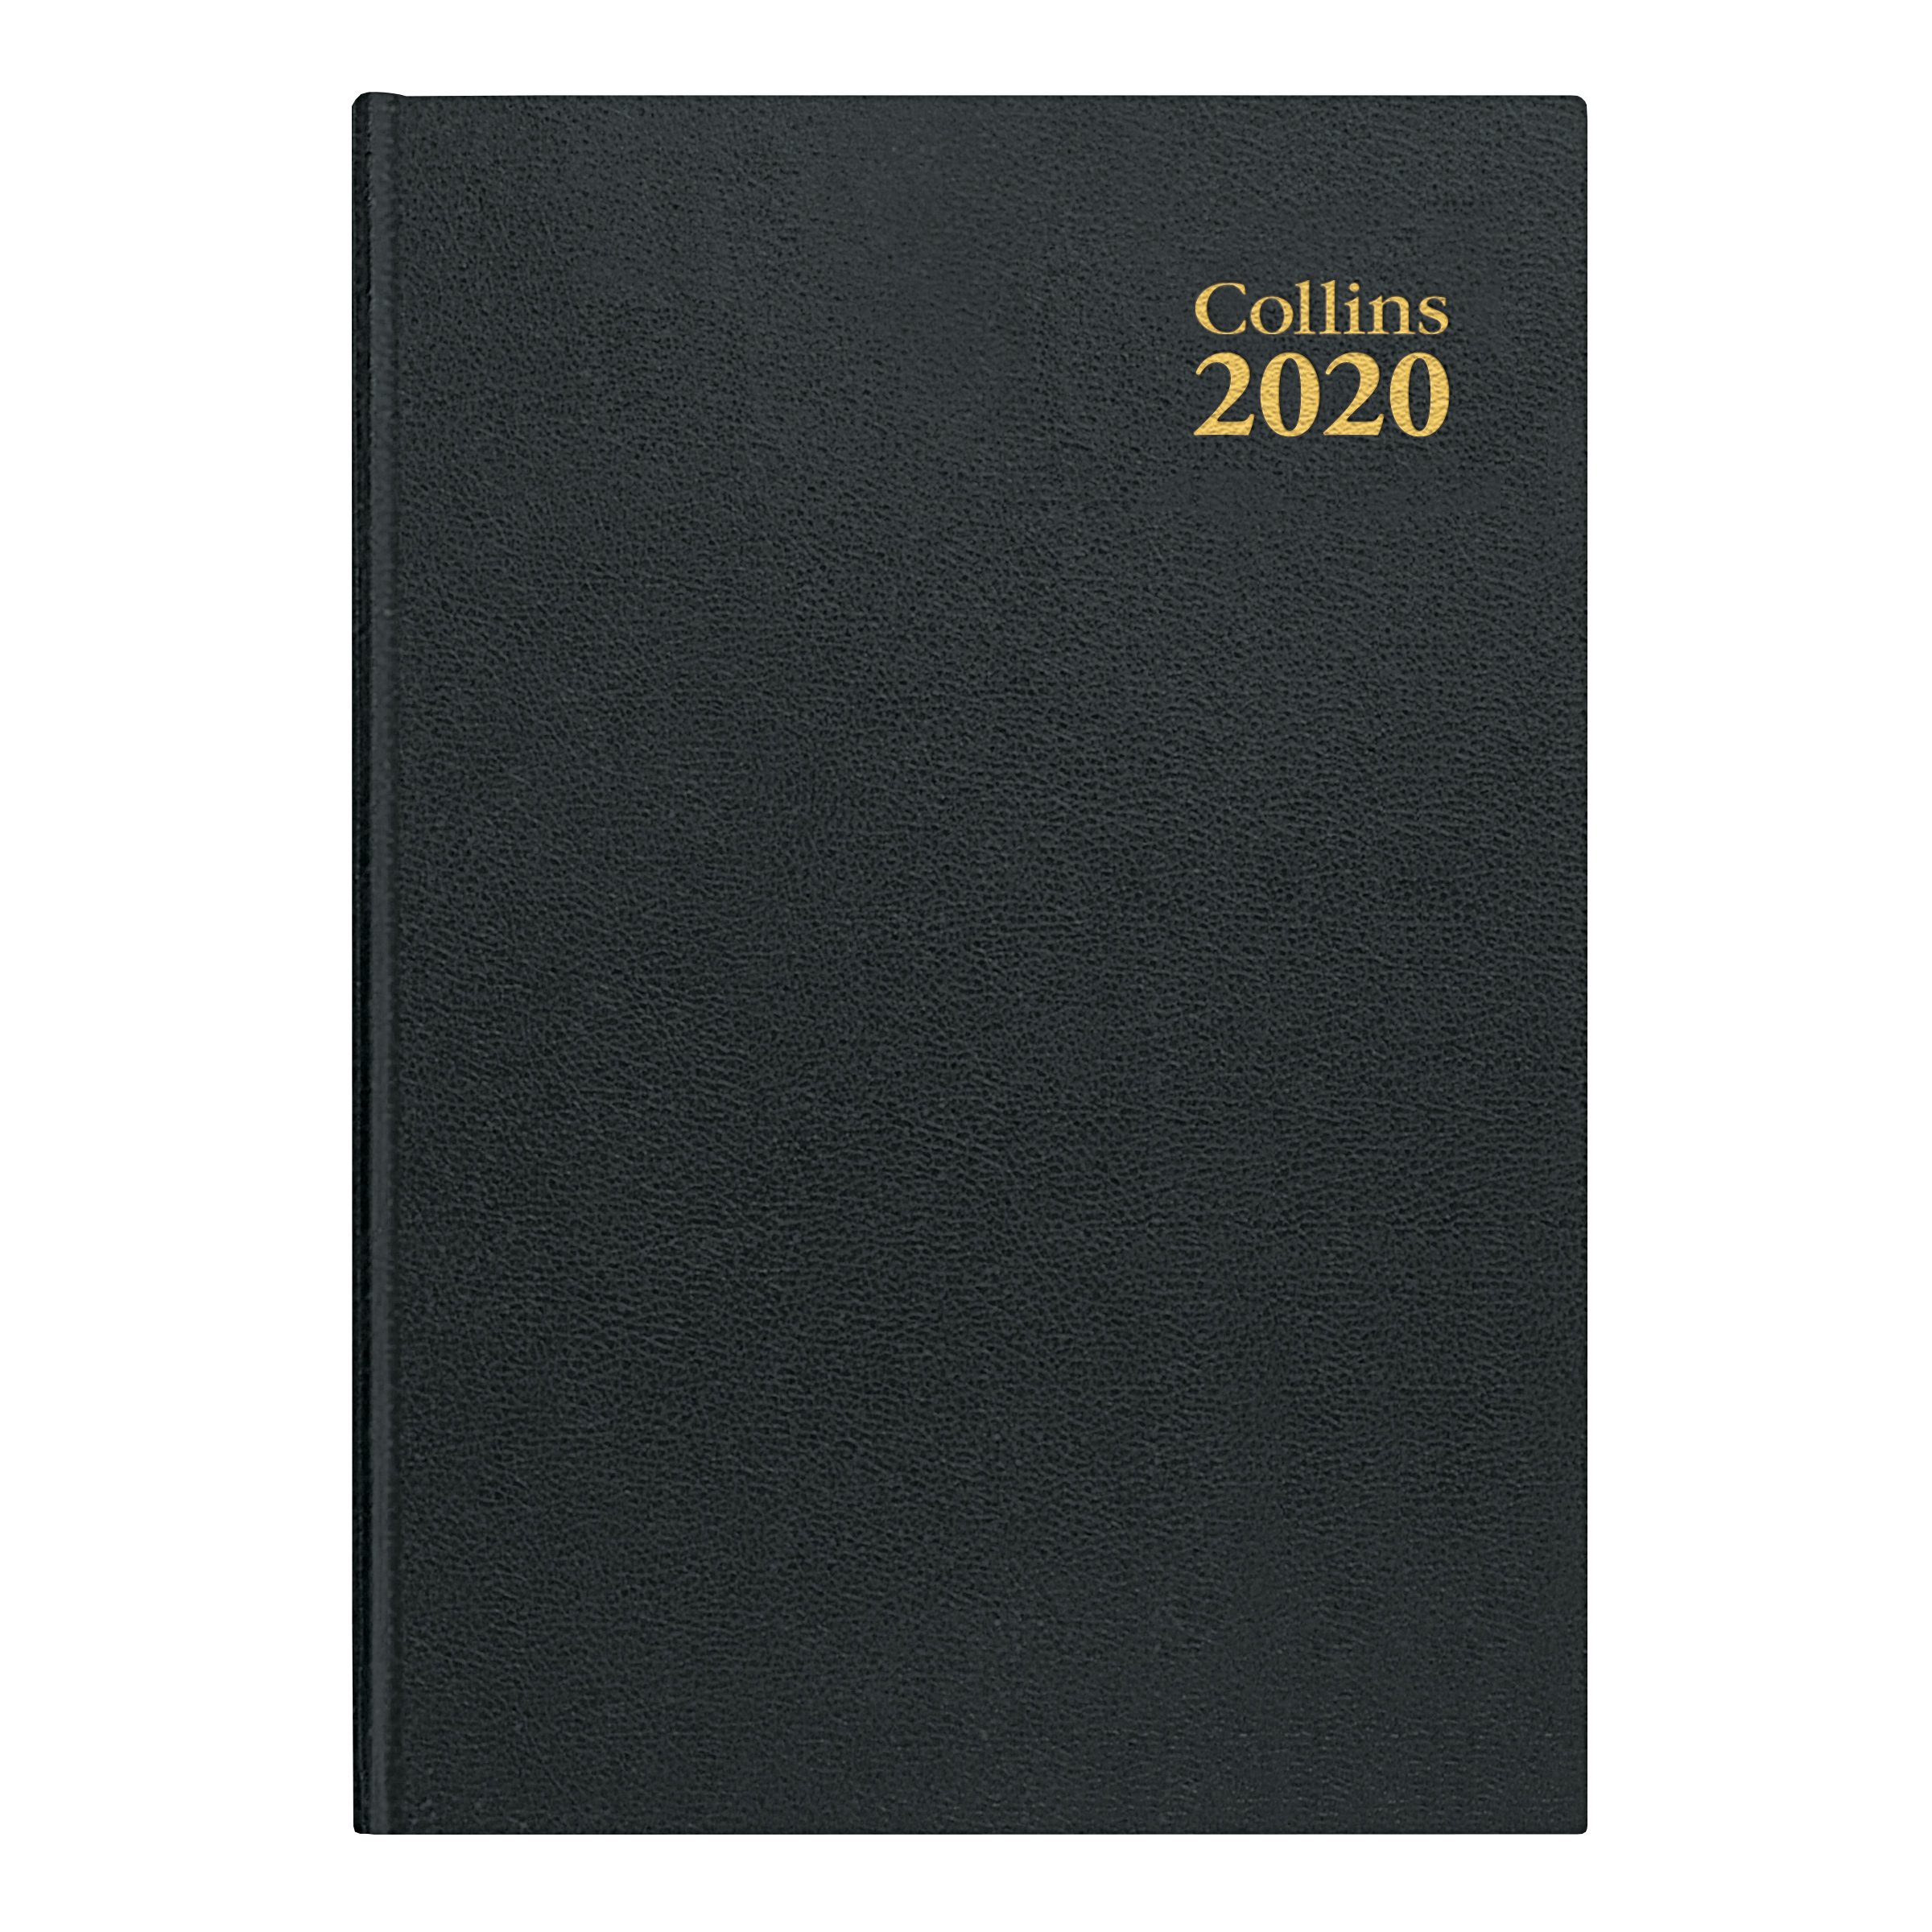 Collins 2020 Royal Desk Diary Day to Page Sewn Binding A5 210x148mm Black Ref 52 Blk 2020